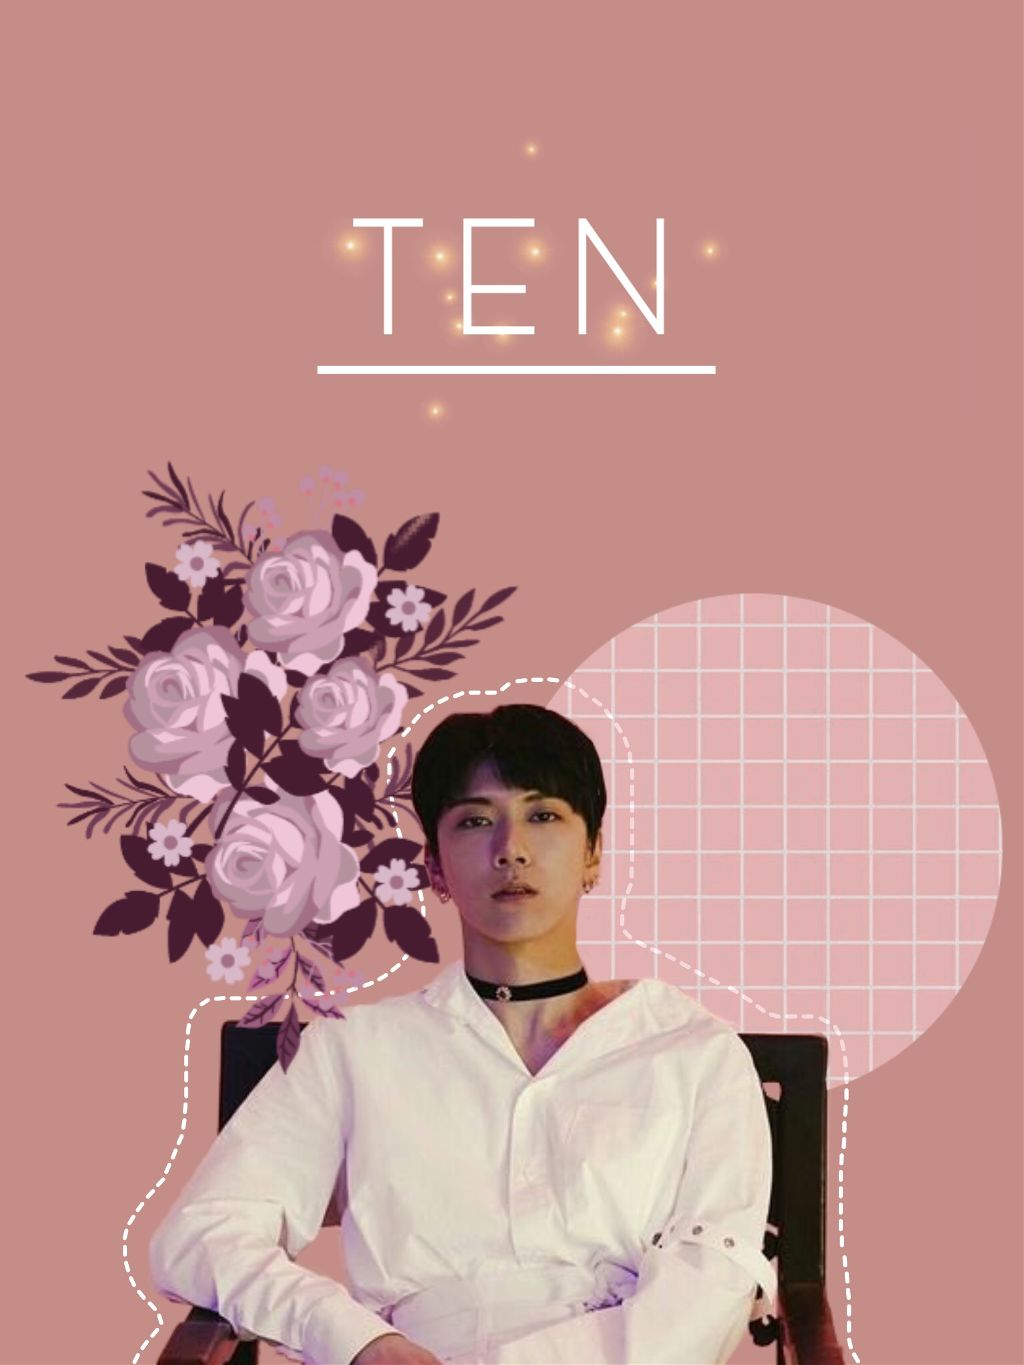 Ten edit! I've not posted for like months because I was busy....but its the holidays and I'm back - although I probably won't post as frequently as I used to....  #ten #chittaphon #chittaphonleechaiyapornkul #nct #nctu #nctuten #nctten